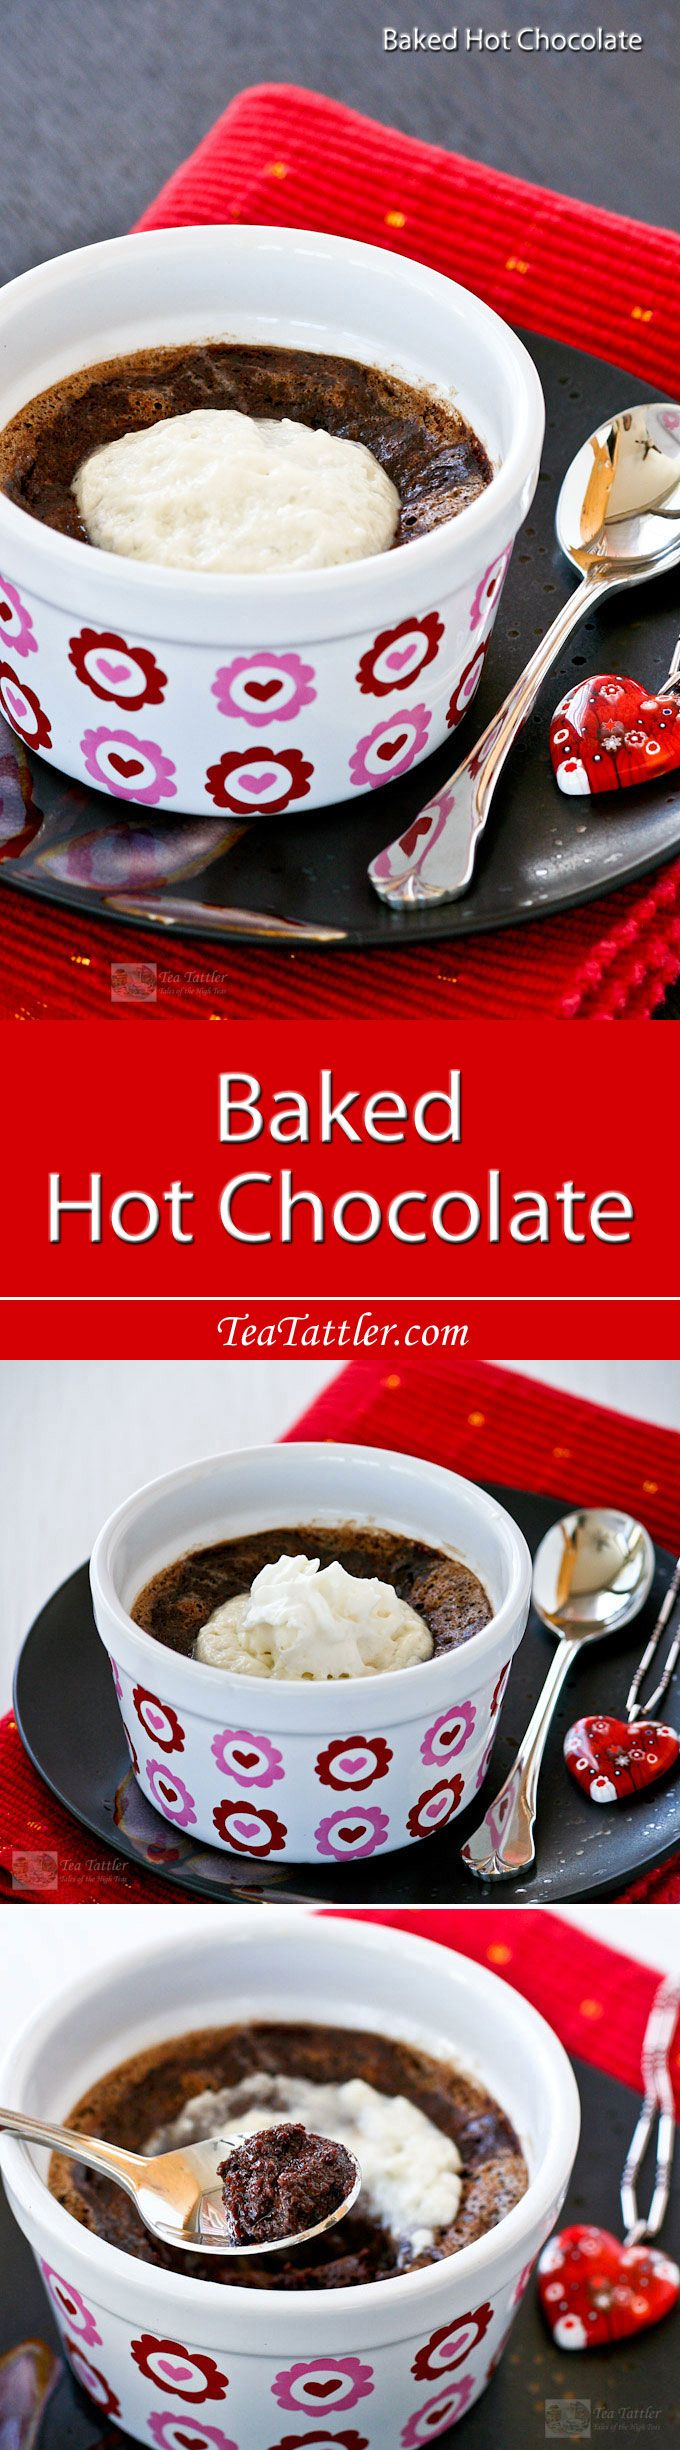 Baked Hot Chocolate - a warm and delicious flourless pudding-like dessert that uses only 4 ingredients. Especially satisfying on a cold day! | TeaTattler.com